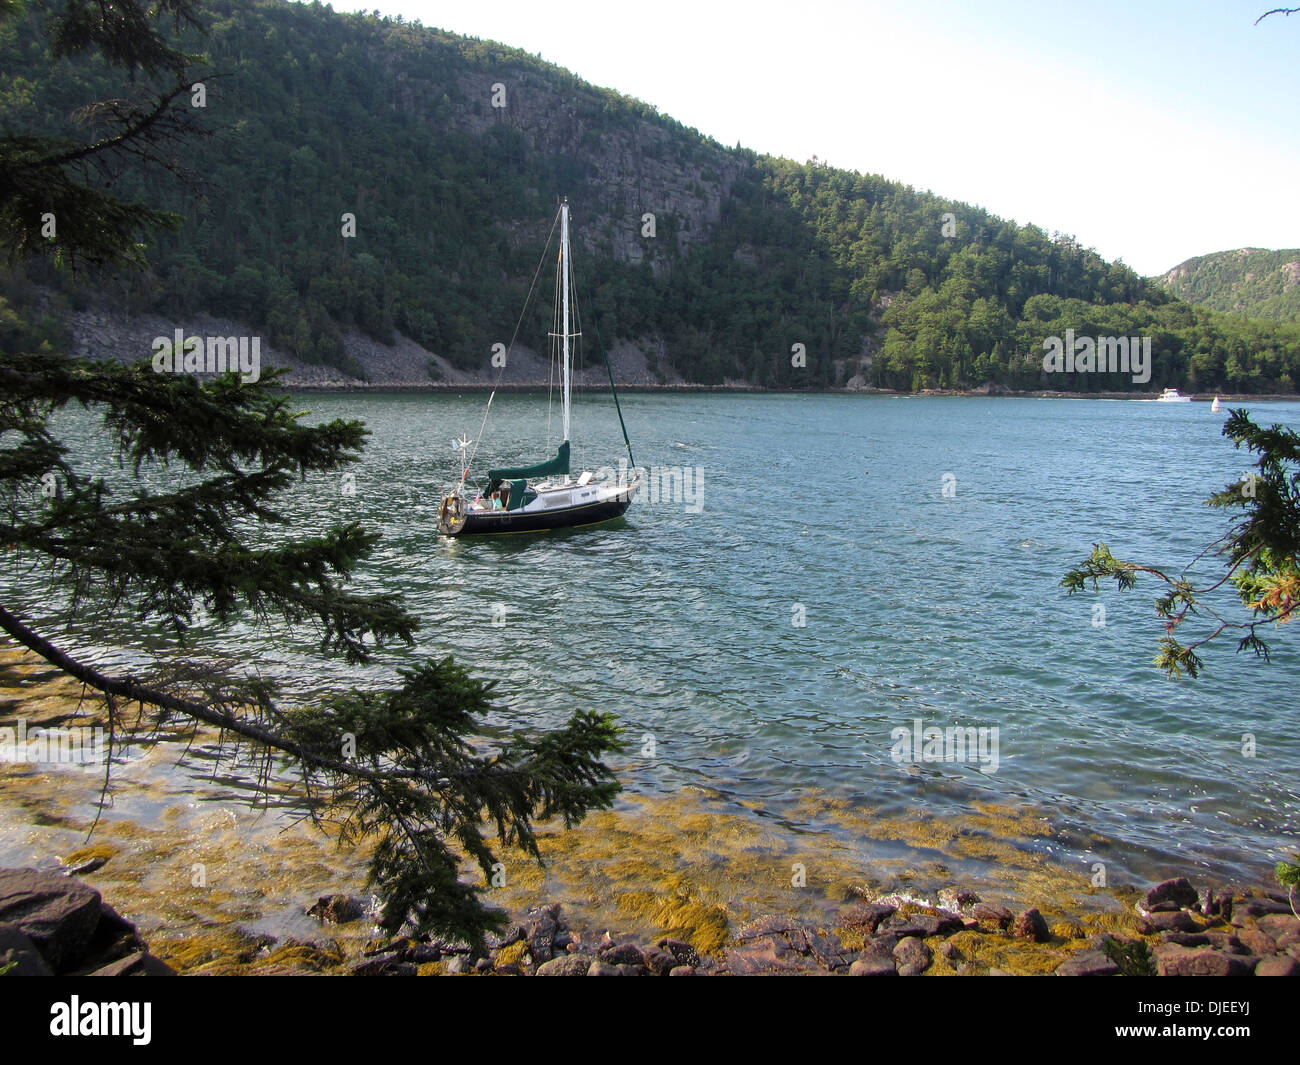 A black sailboat anchored at Valley Cove in the fjord of Somes Sound, Maine, USA. - Stock Image